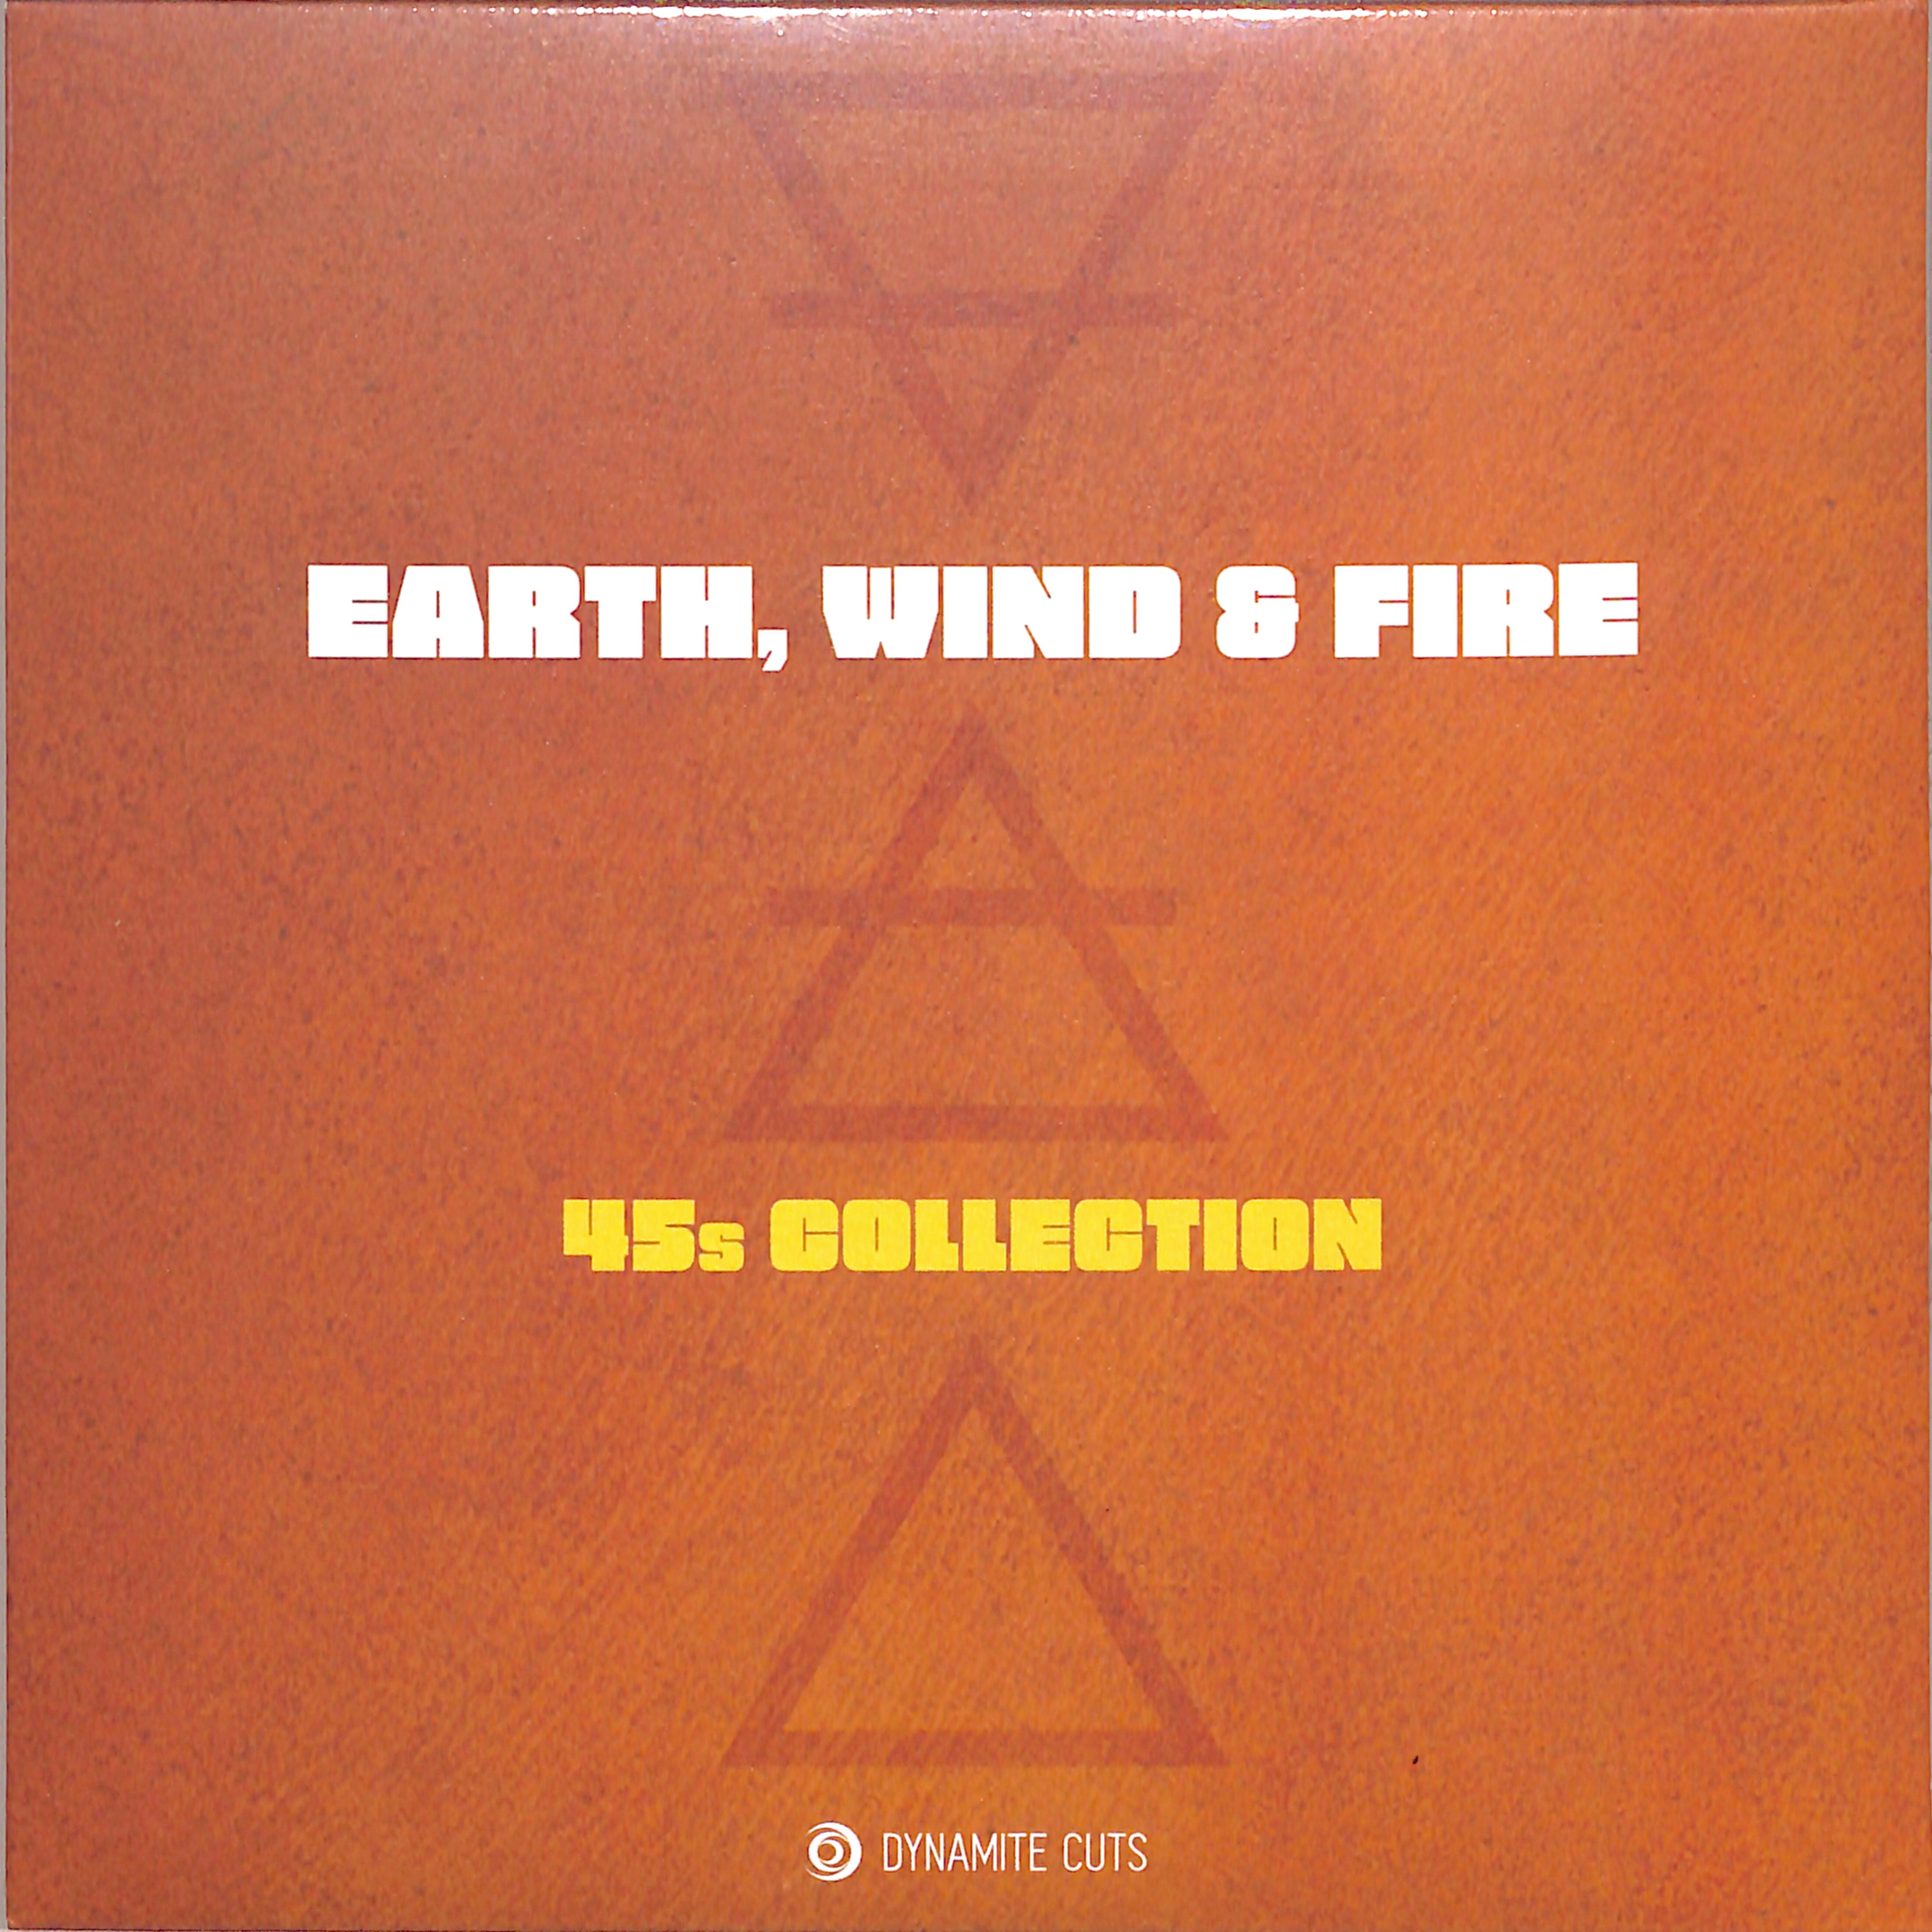 Earth, Wind & Fire - 45S COLLECTION